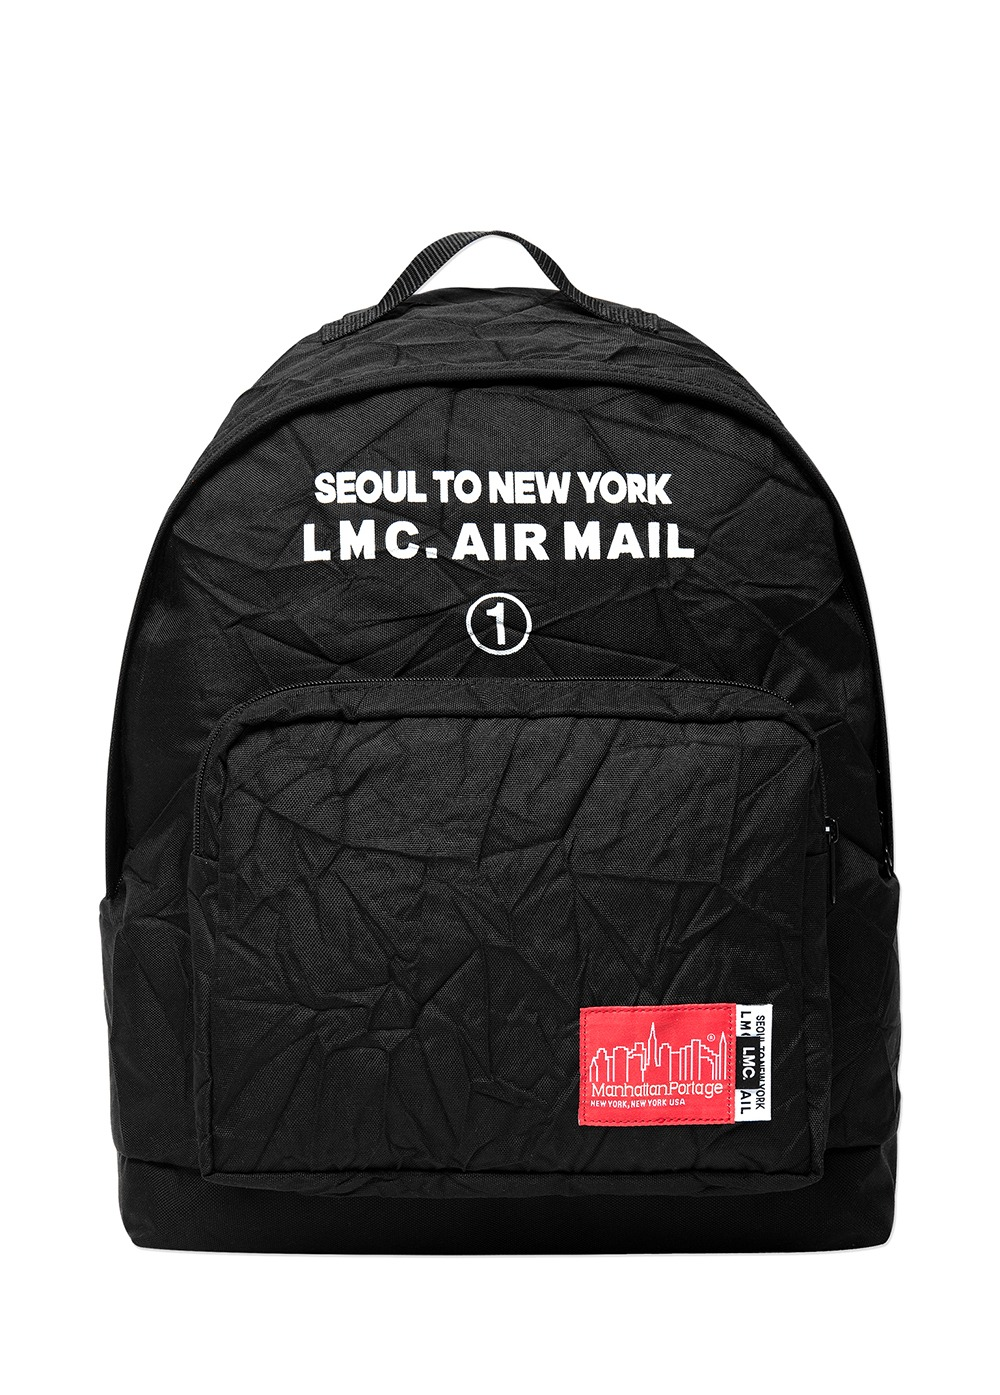 LMC X MANHATTAN PORTAGE BIG APPLE BACKPACK (LG) black